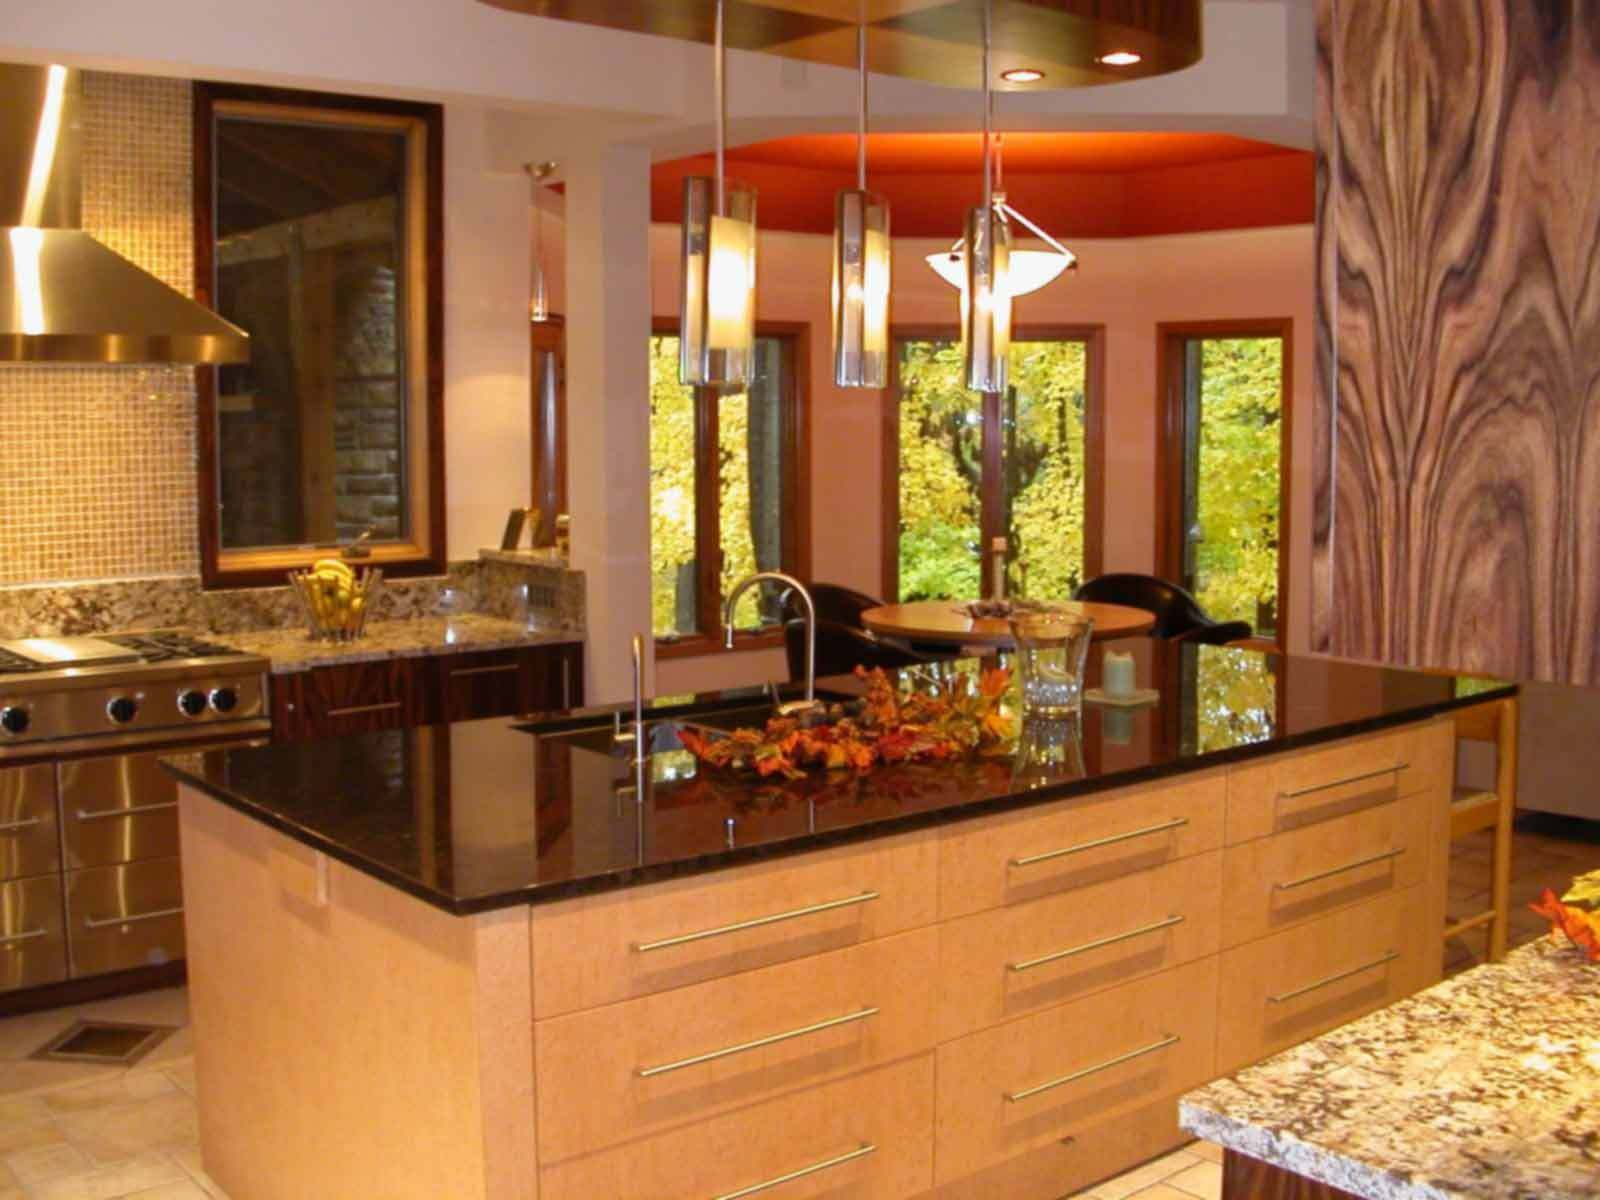 AAA Remodeling Company  Kitchen  Bathroom Remodel St